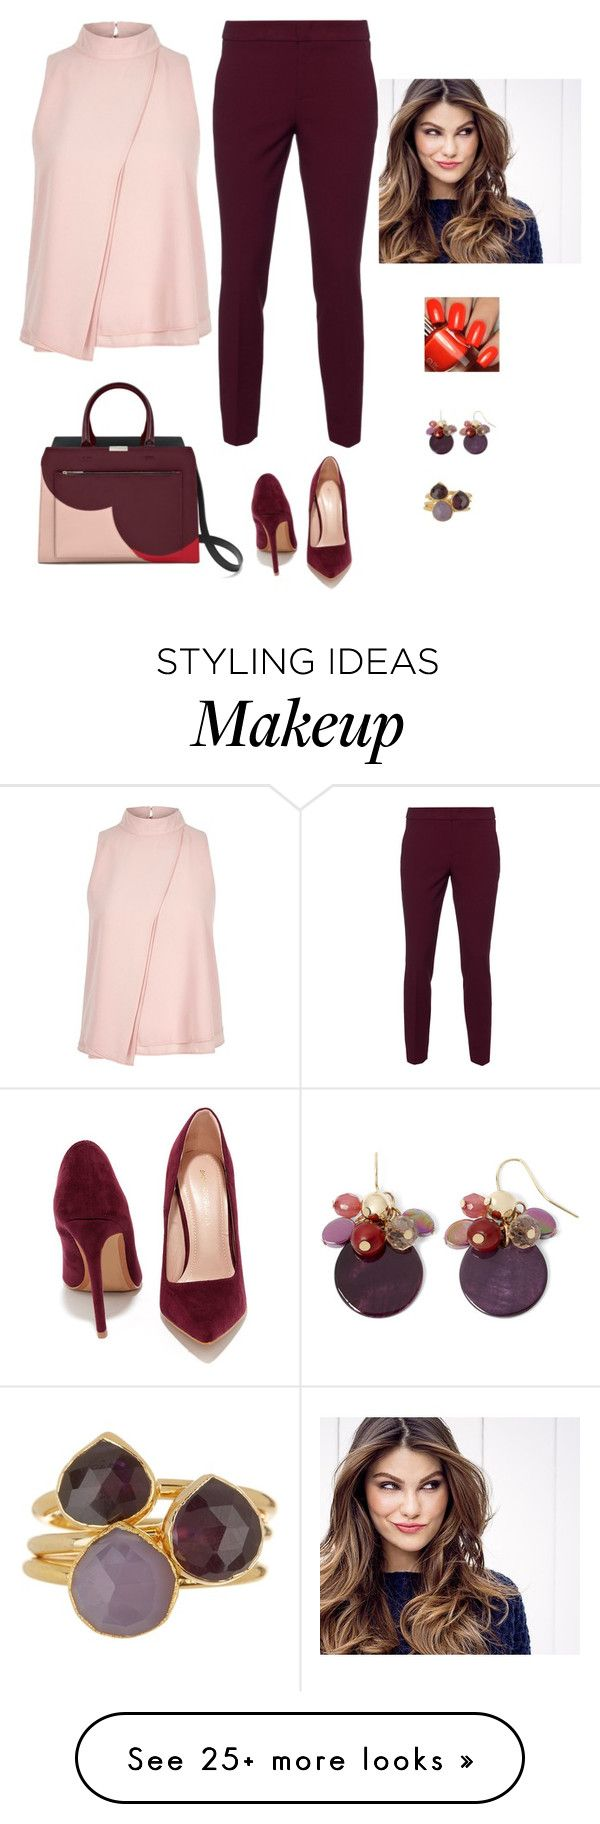 """""""Untitled #742"""" by azra-99 on Polyvore featuring River Island, RED Valentino, Shoe Republic LA, ULTA, Mixit and Janna Conner"""